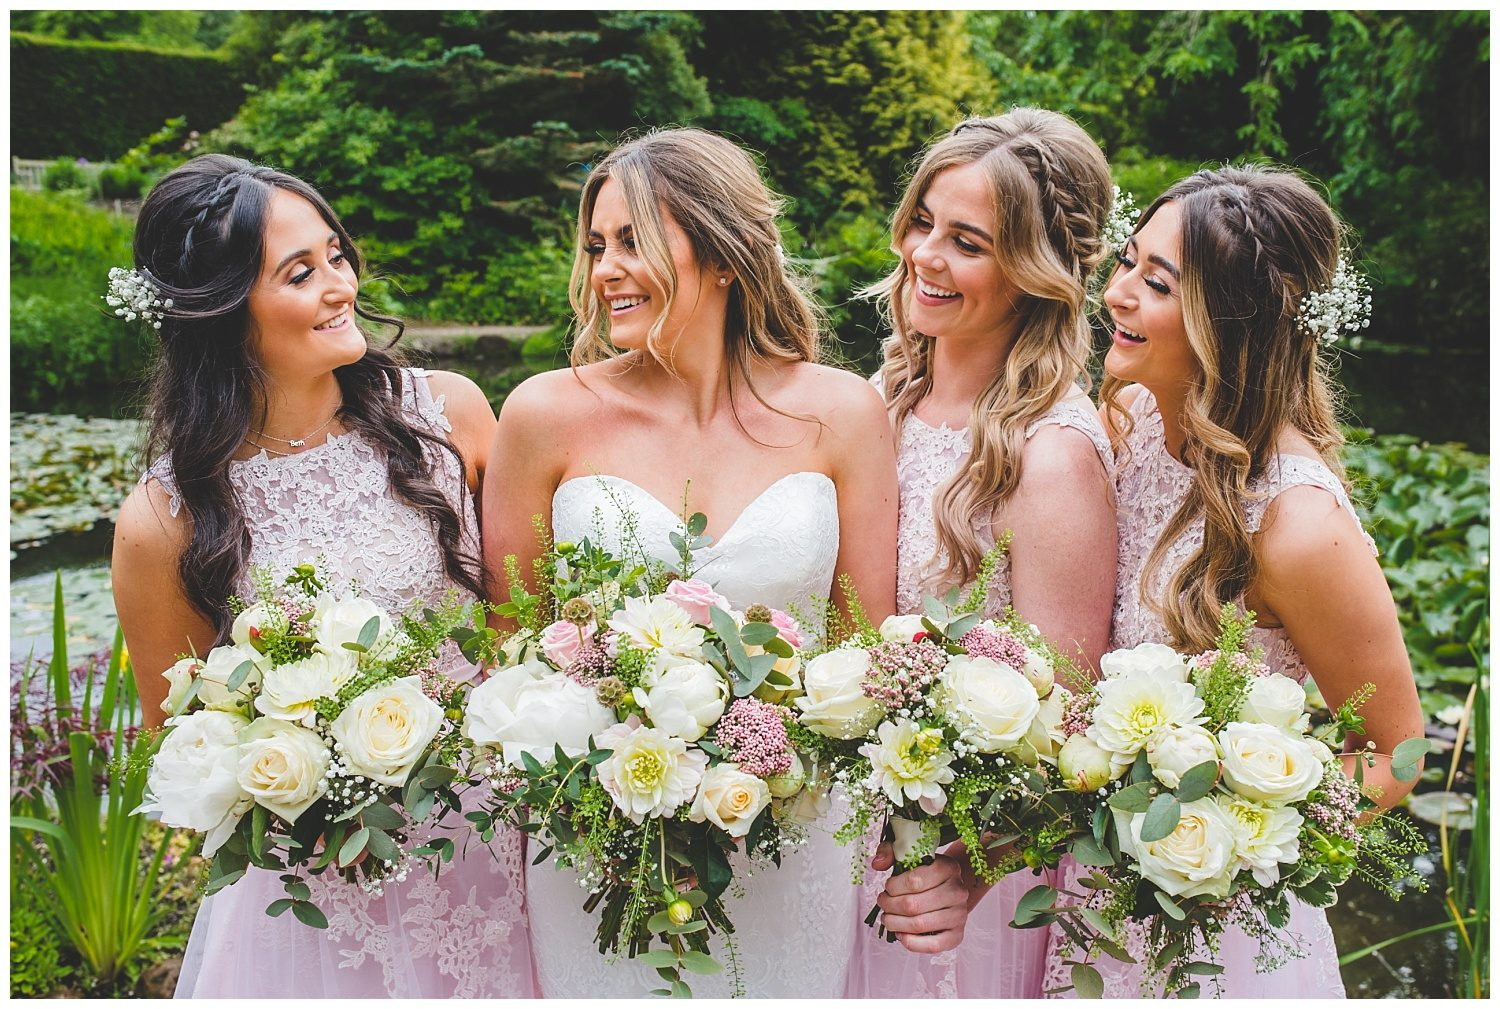 Beautiful bride and her bridesmaids in pink